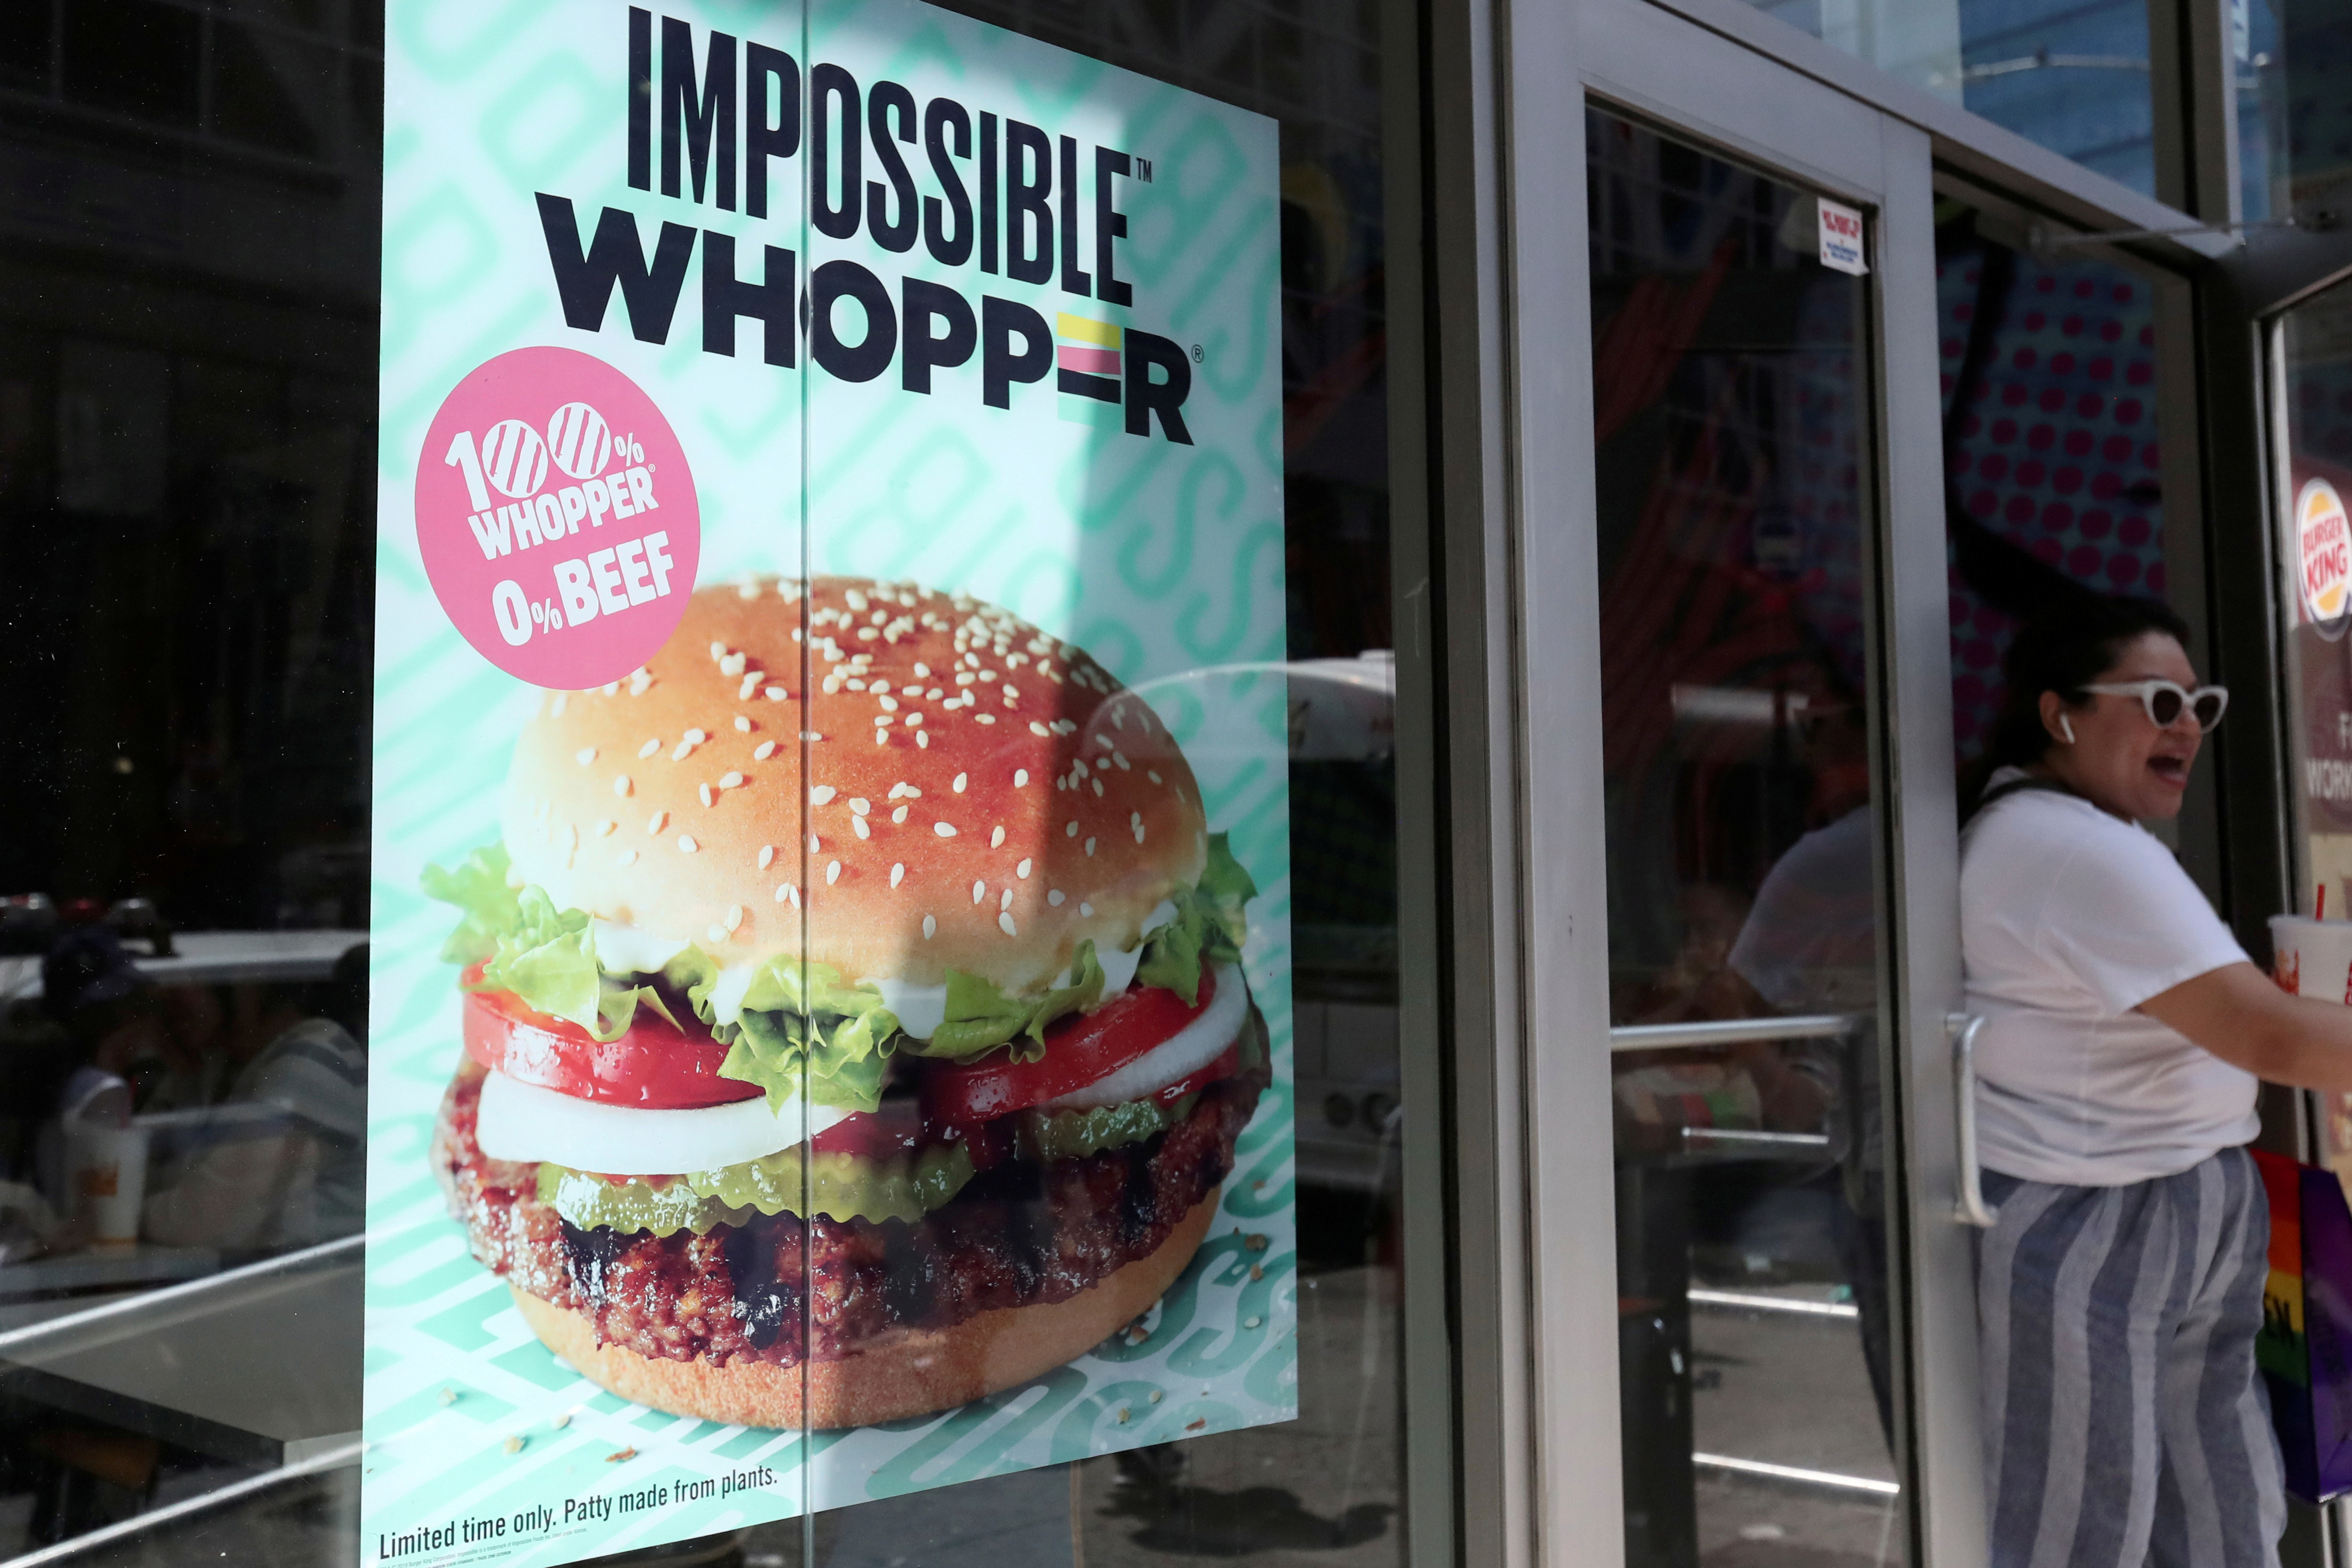 A sign advertising the soy based Impossible Whopper is seen outside a Burger King in New York, U.S., August 8, 2019. REUTERS/Shannon Stapleton/File Photo